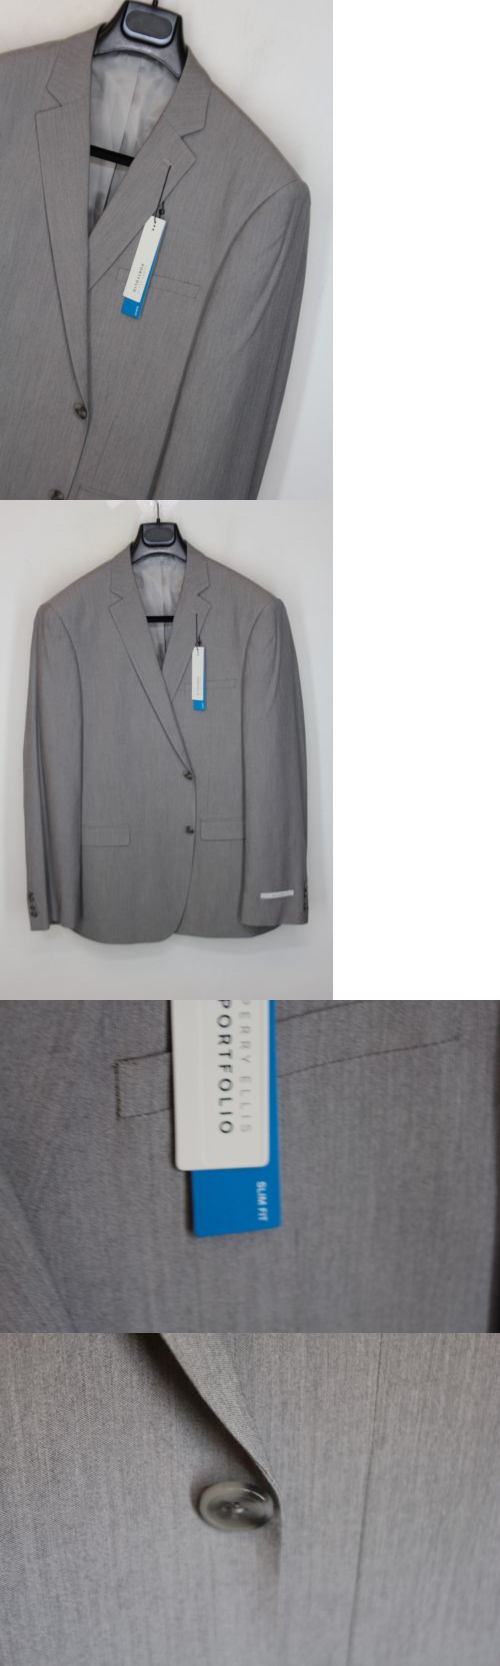 Other Golf Clothing 158939: New Perry Ellis Slim Fit 2 Pc Suit 44L 38W Light Grey Flat Pant A#664 -> BUY IT NOW ONLY: $65.99 on eBay!